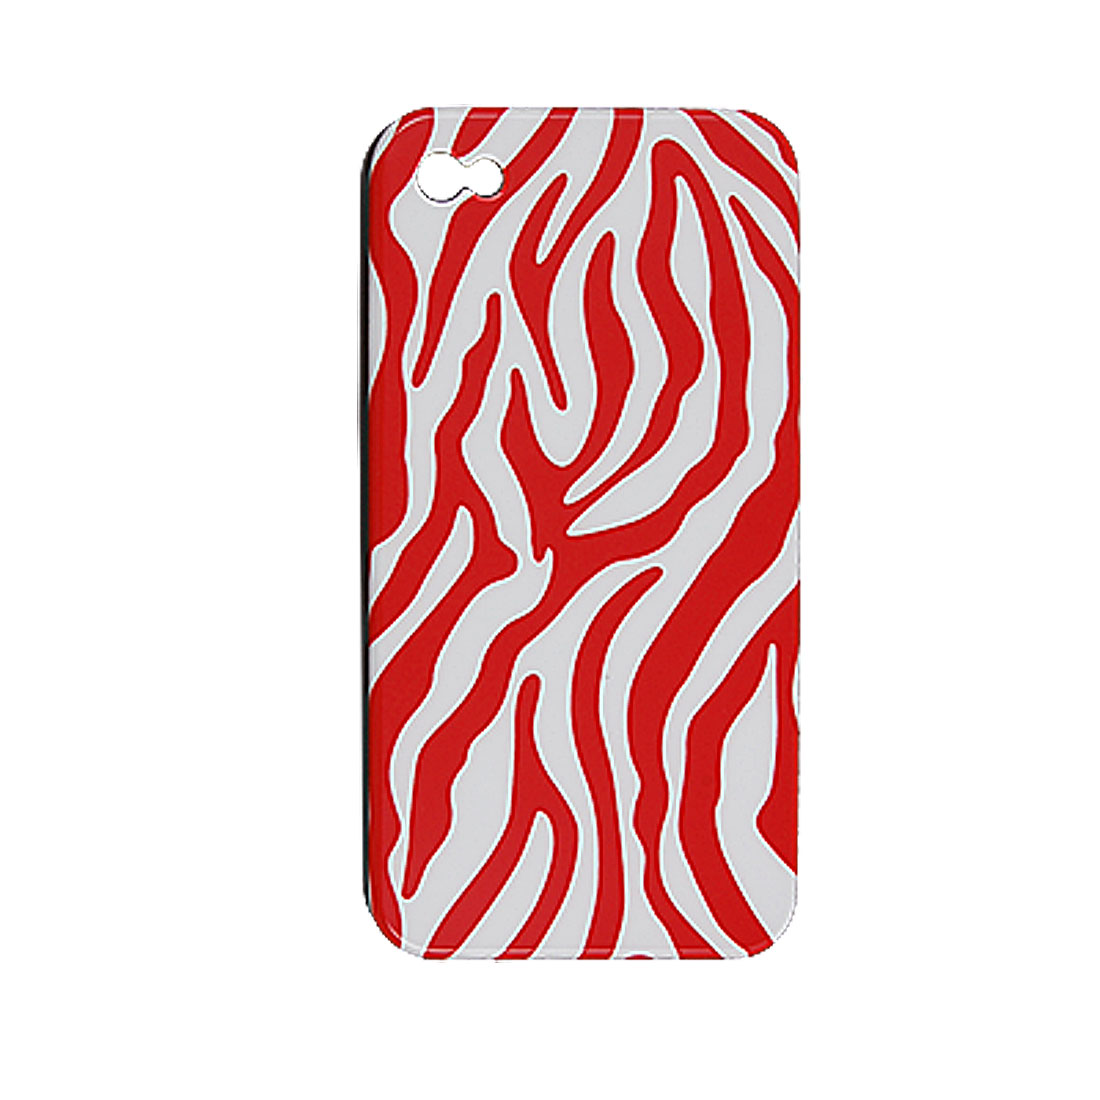 Red White Zebra Pattern Hard Back Case Shell for iPhone 4 4G